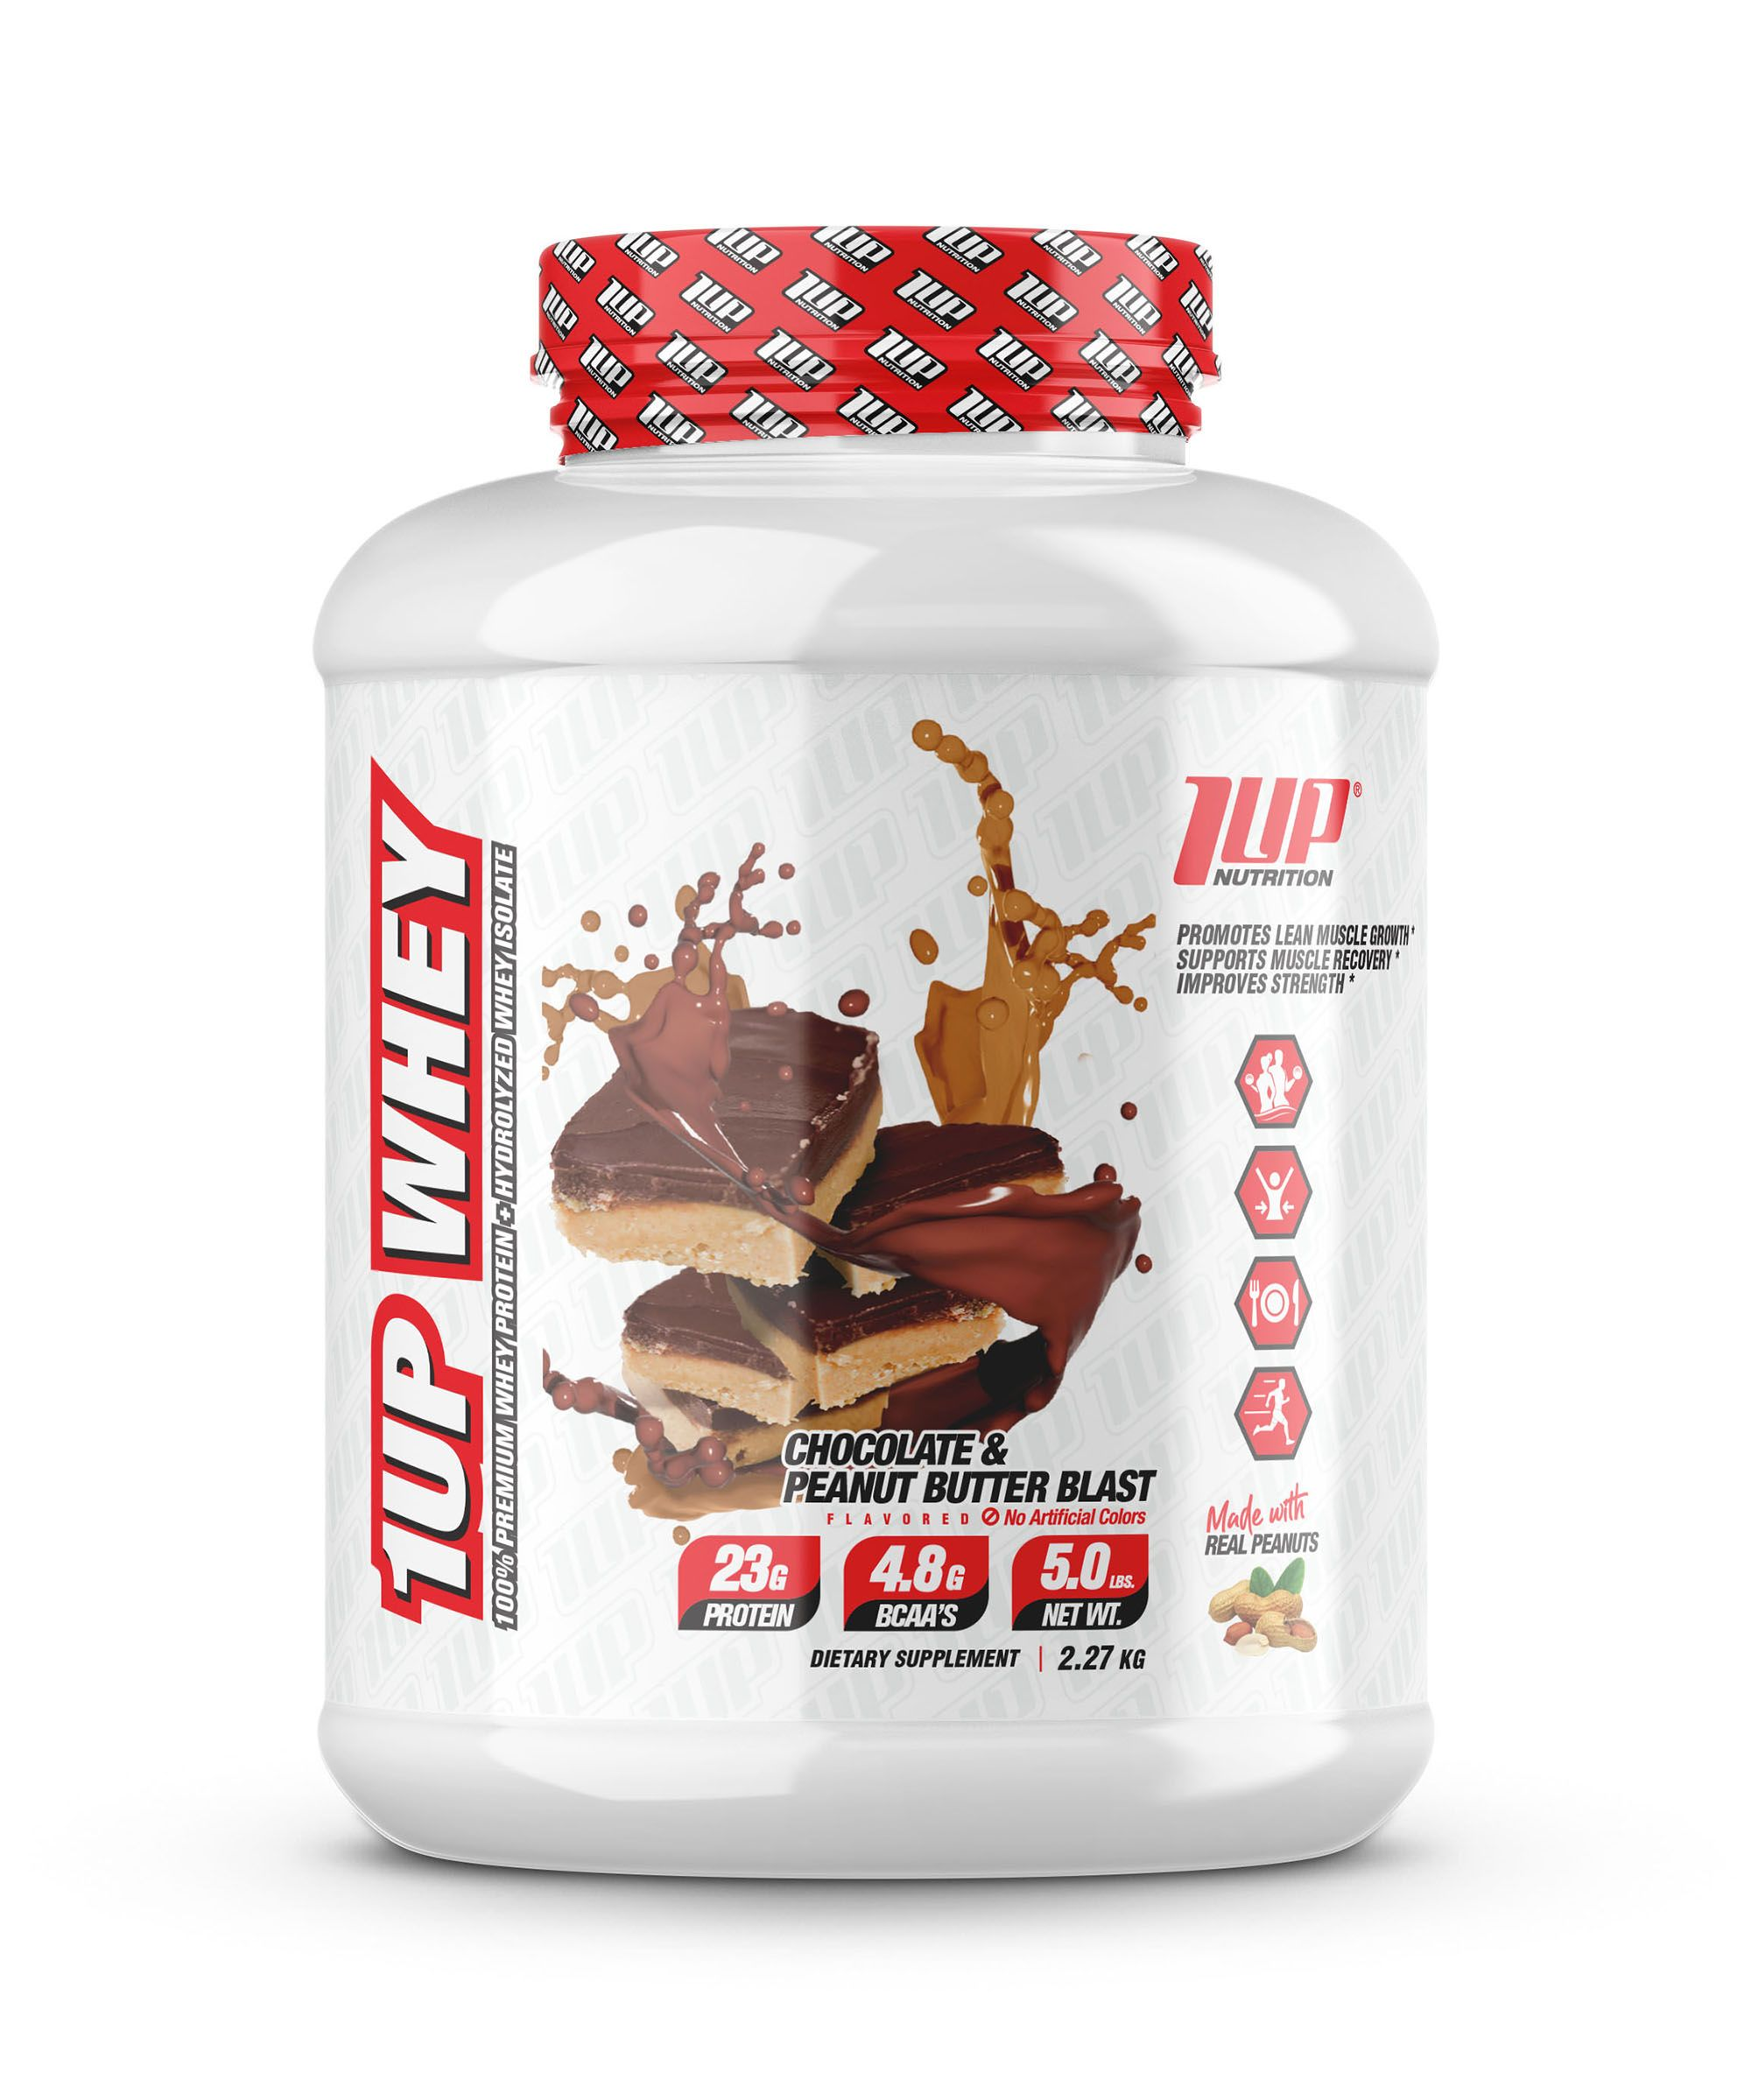 1up-whey-protein-chocolate-and-peanut-butter-blast-5lb